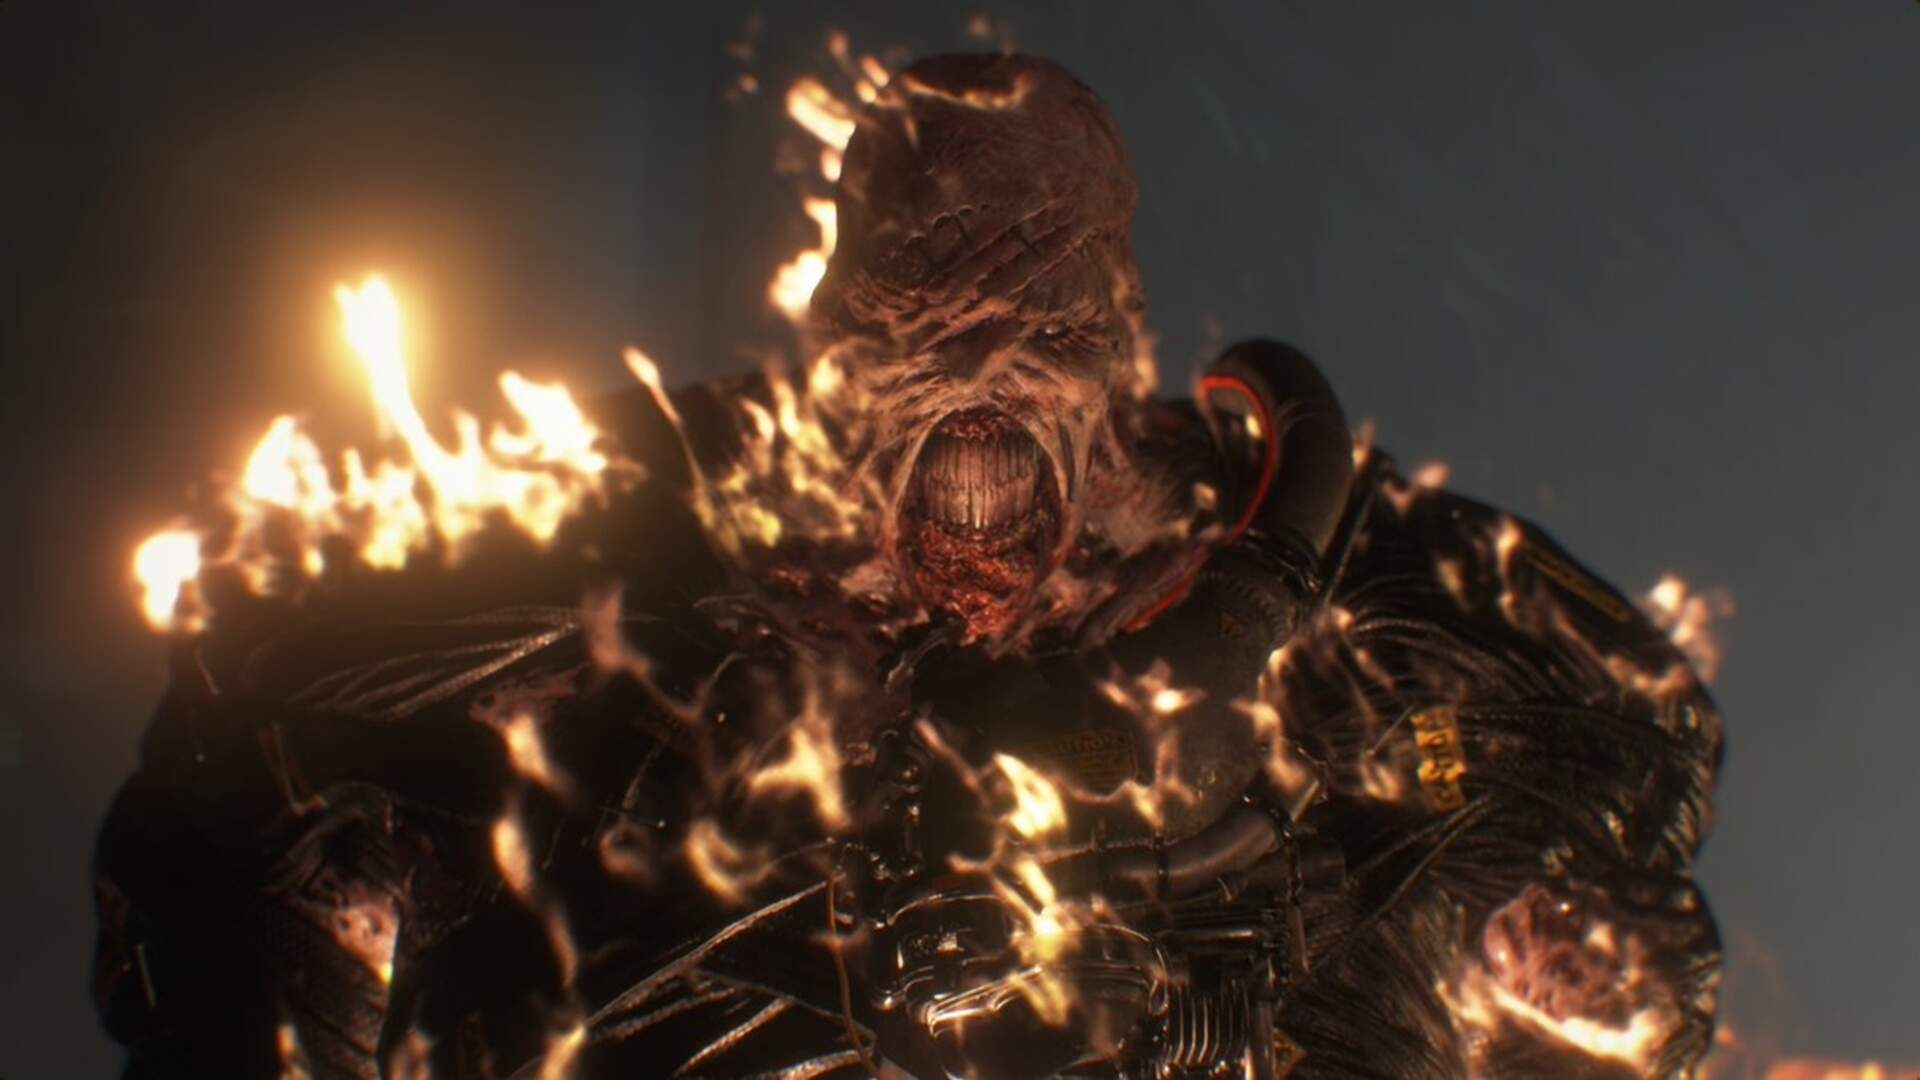 Nemesis Doesn't Take Kindly to Trolls in Resident Evil 3 Remake's Demo